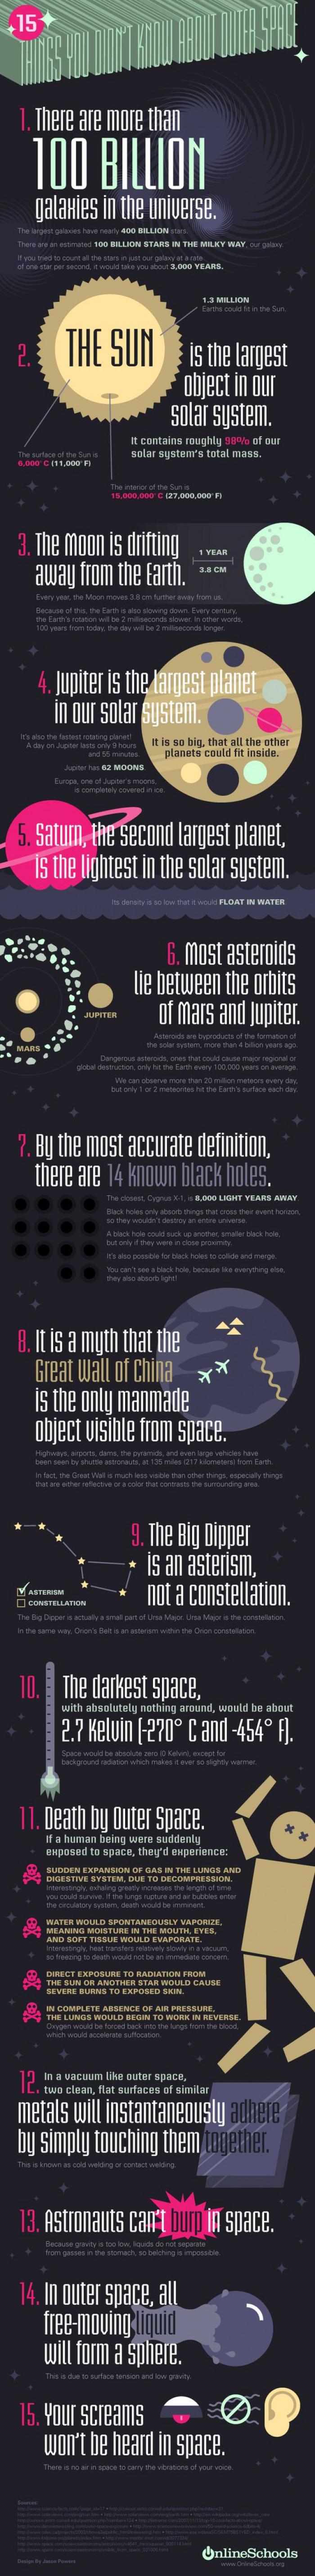 Things You Didn't Know About Space